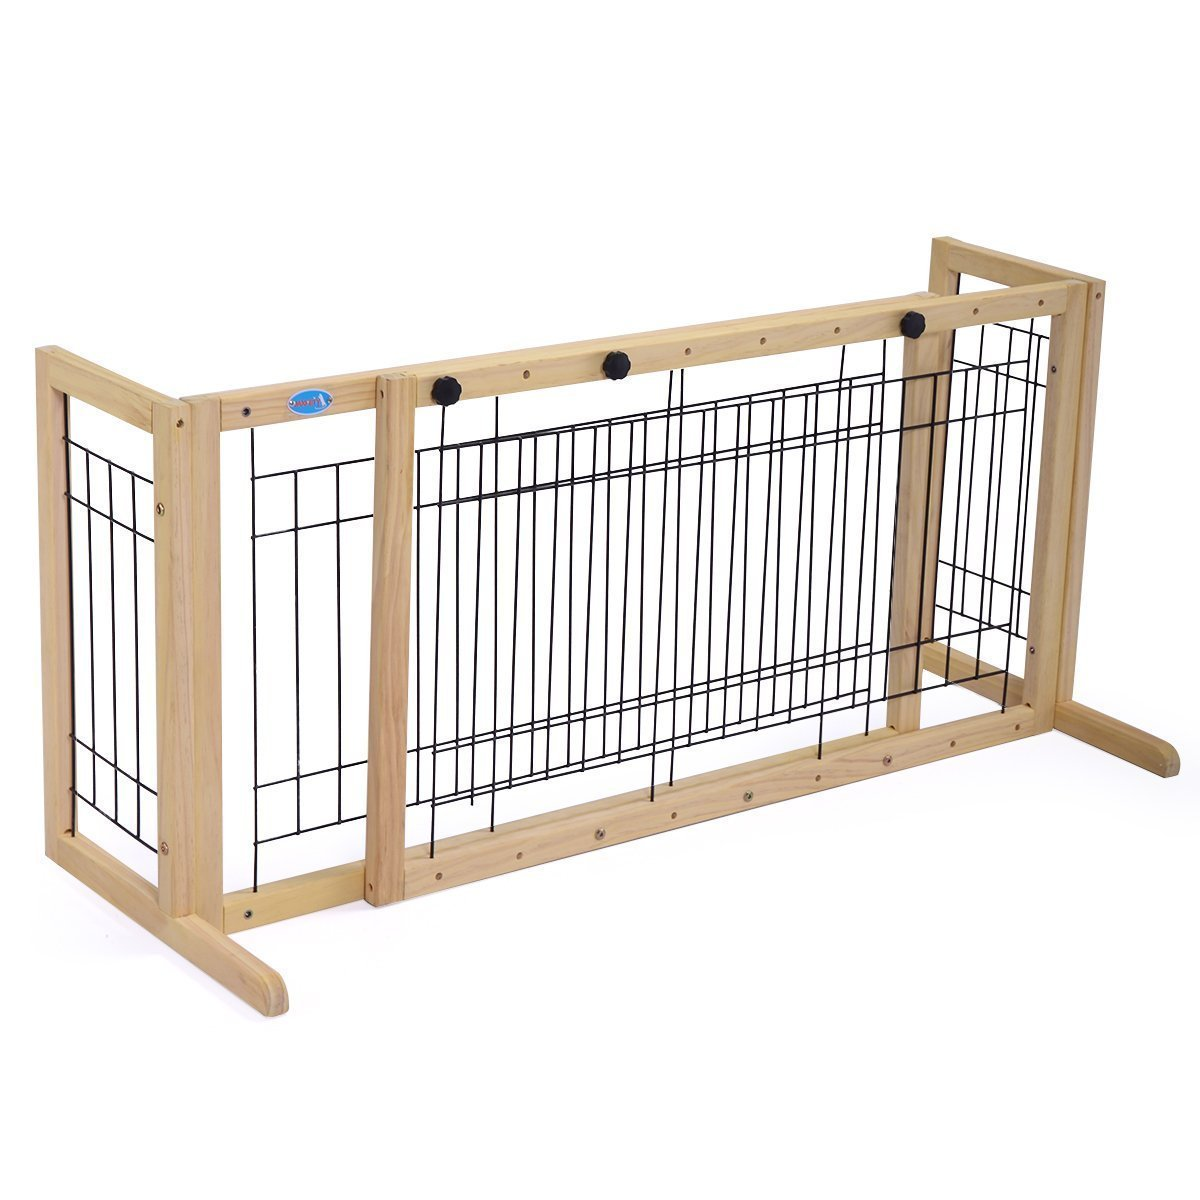 JAXPETY Pet Fence Gate Free Standing Adjustable Dog Gate Indoor Pine Wood Construction,Light Wood